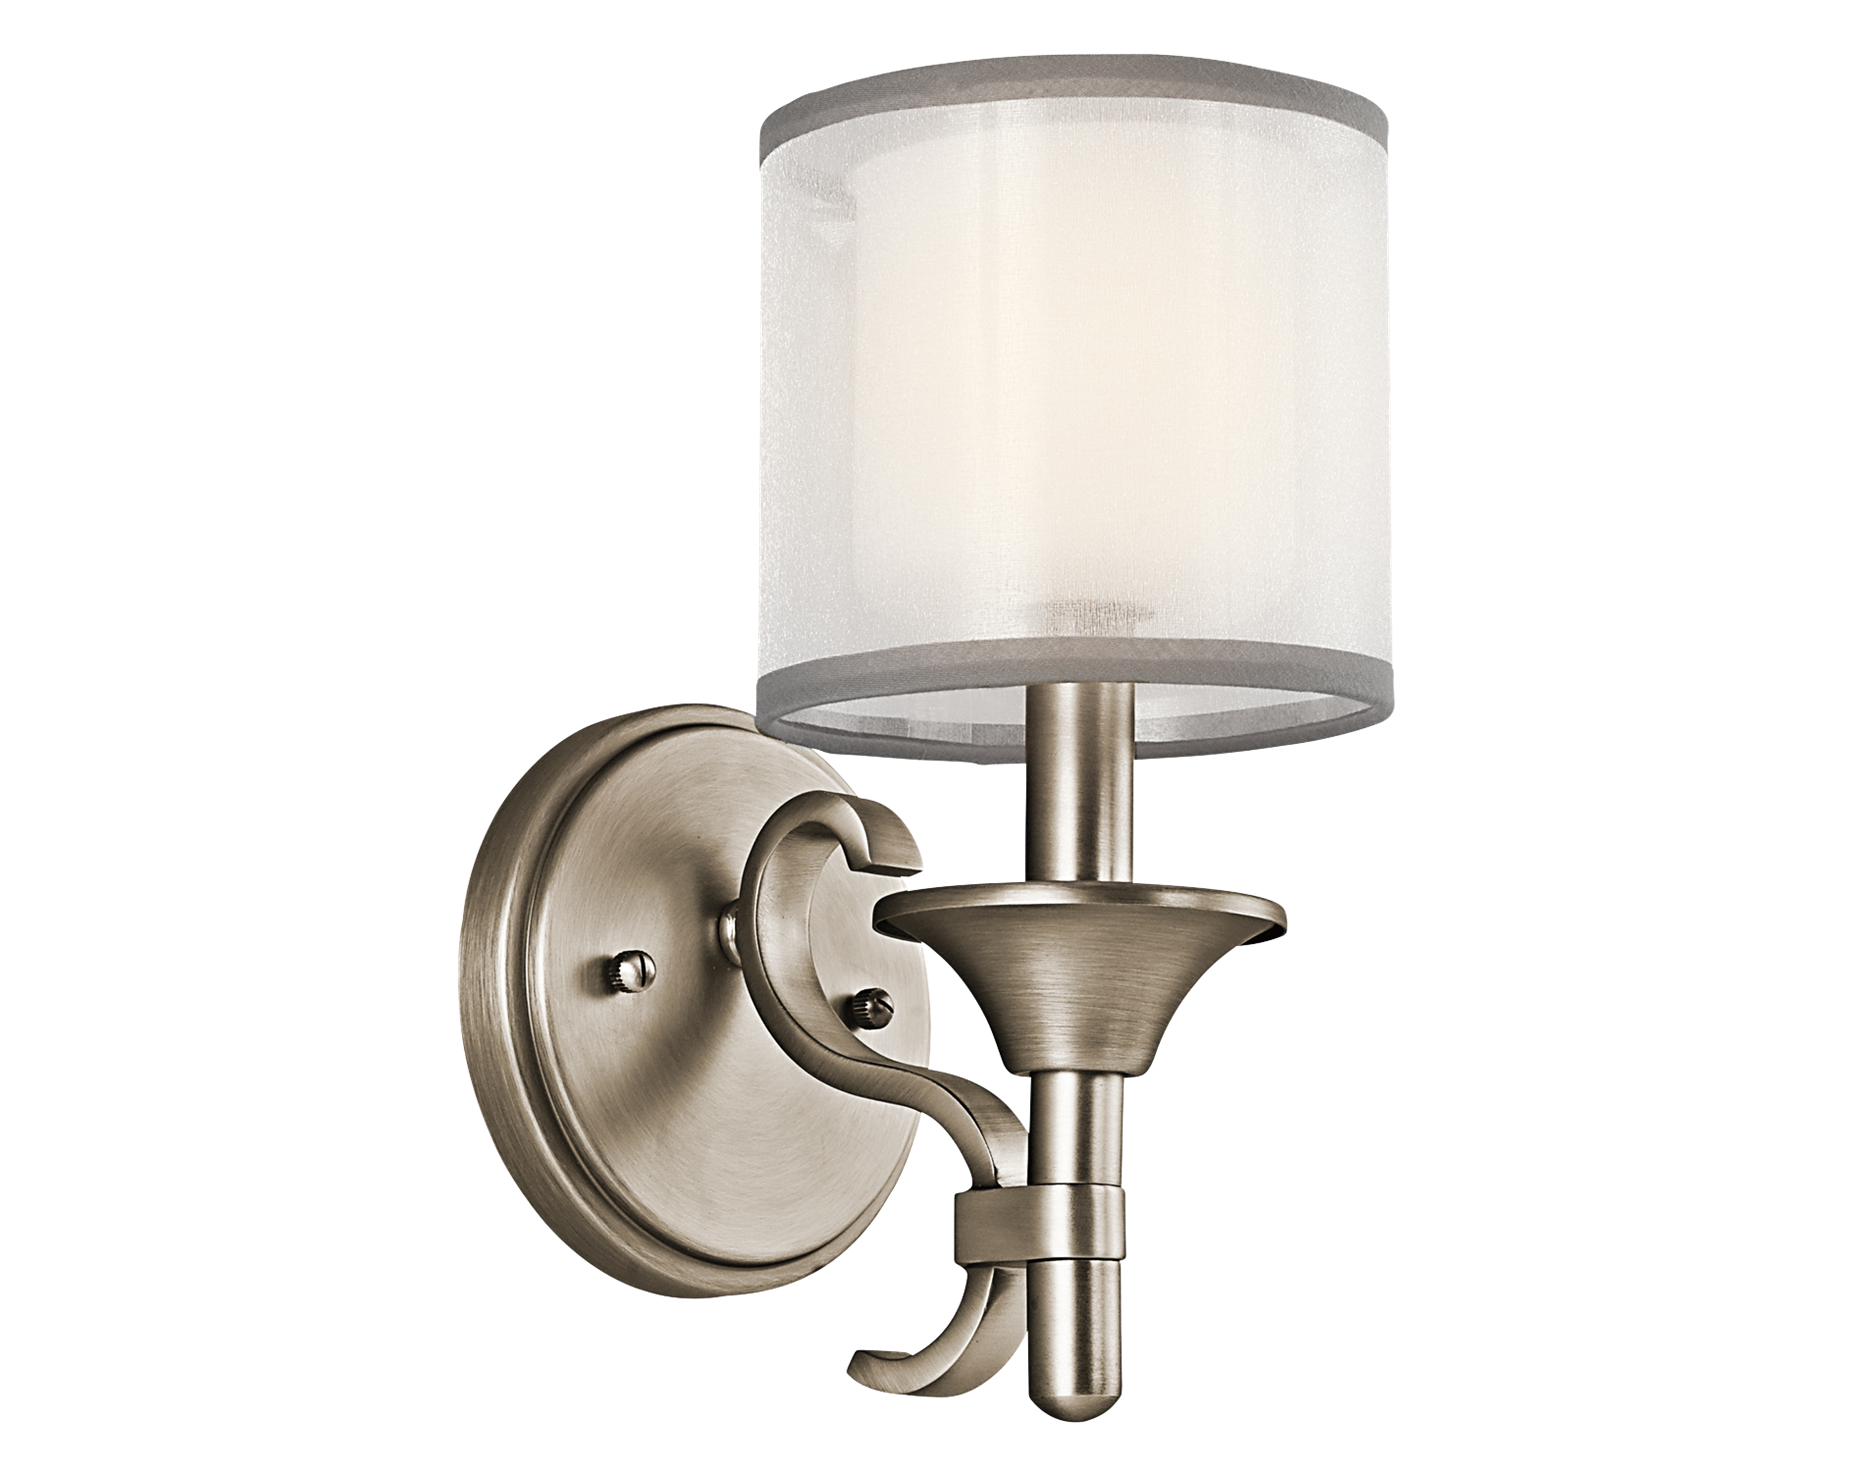 Lacey collection 1 light wall sconce in antique pewter wall lacey collection 1 light wall sconce in antique pewter arubaitofo Image collections